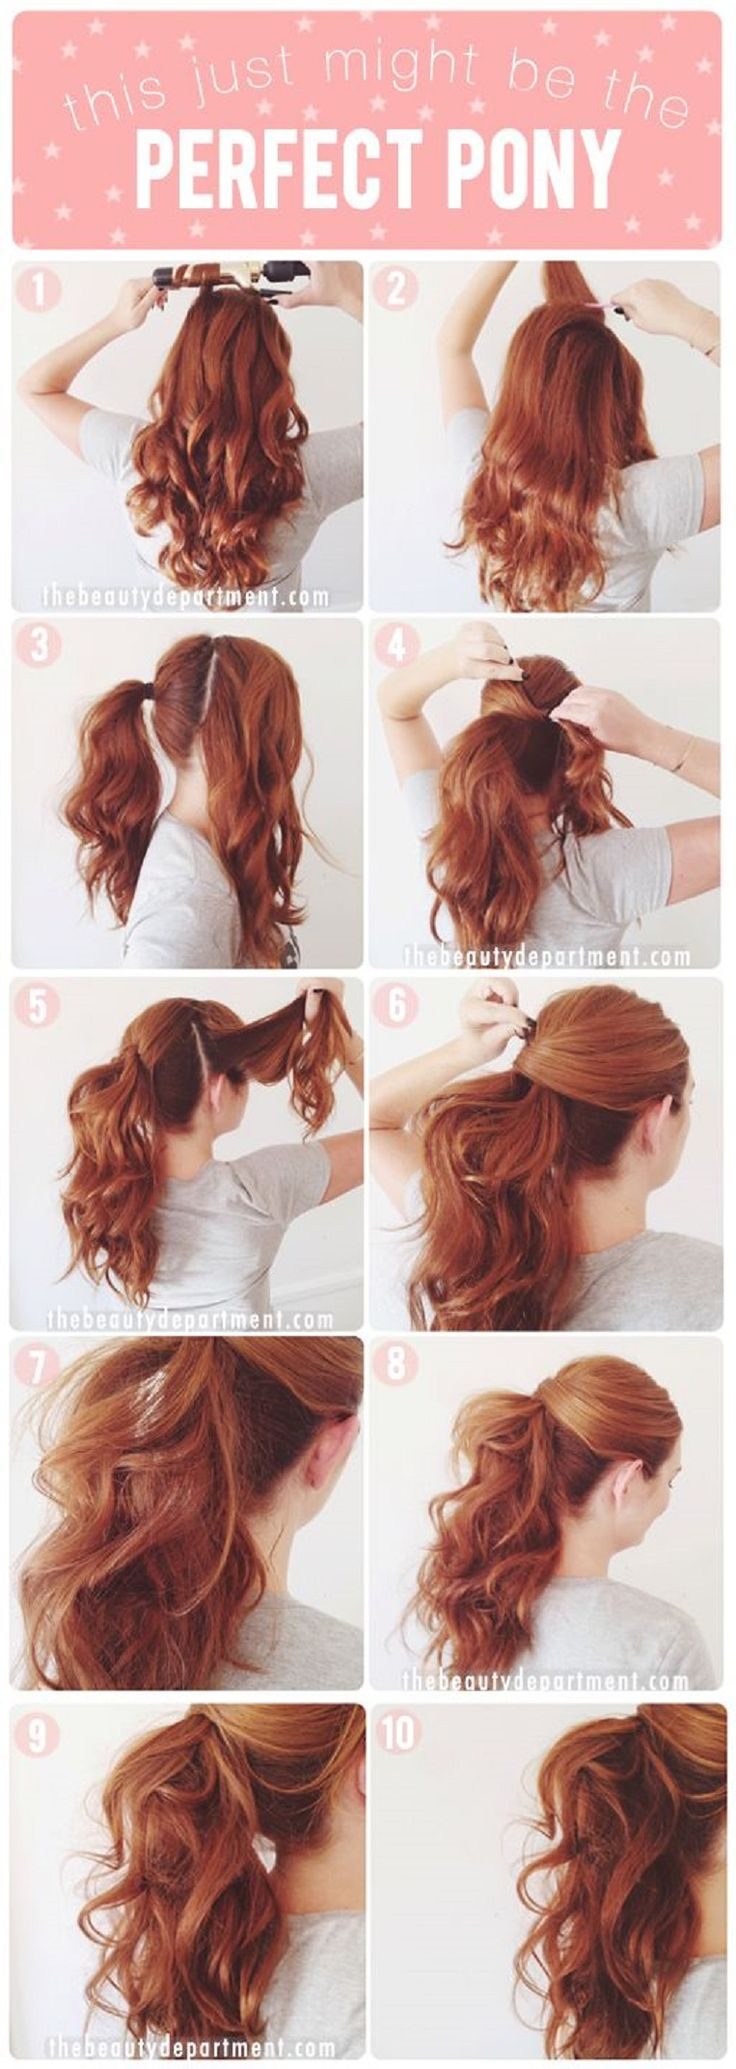 Step-by-step tutorial on the ponytail